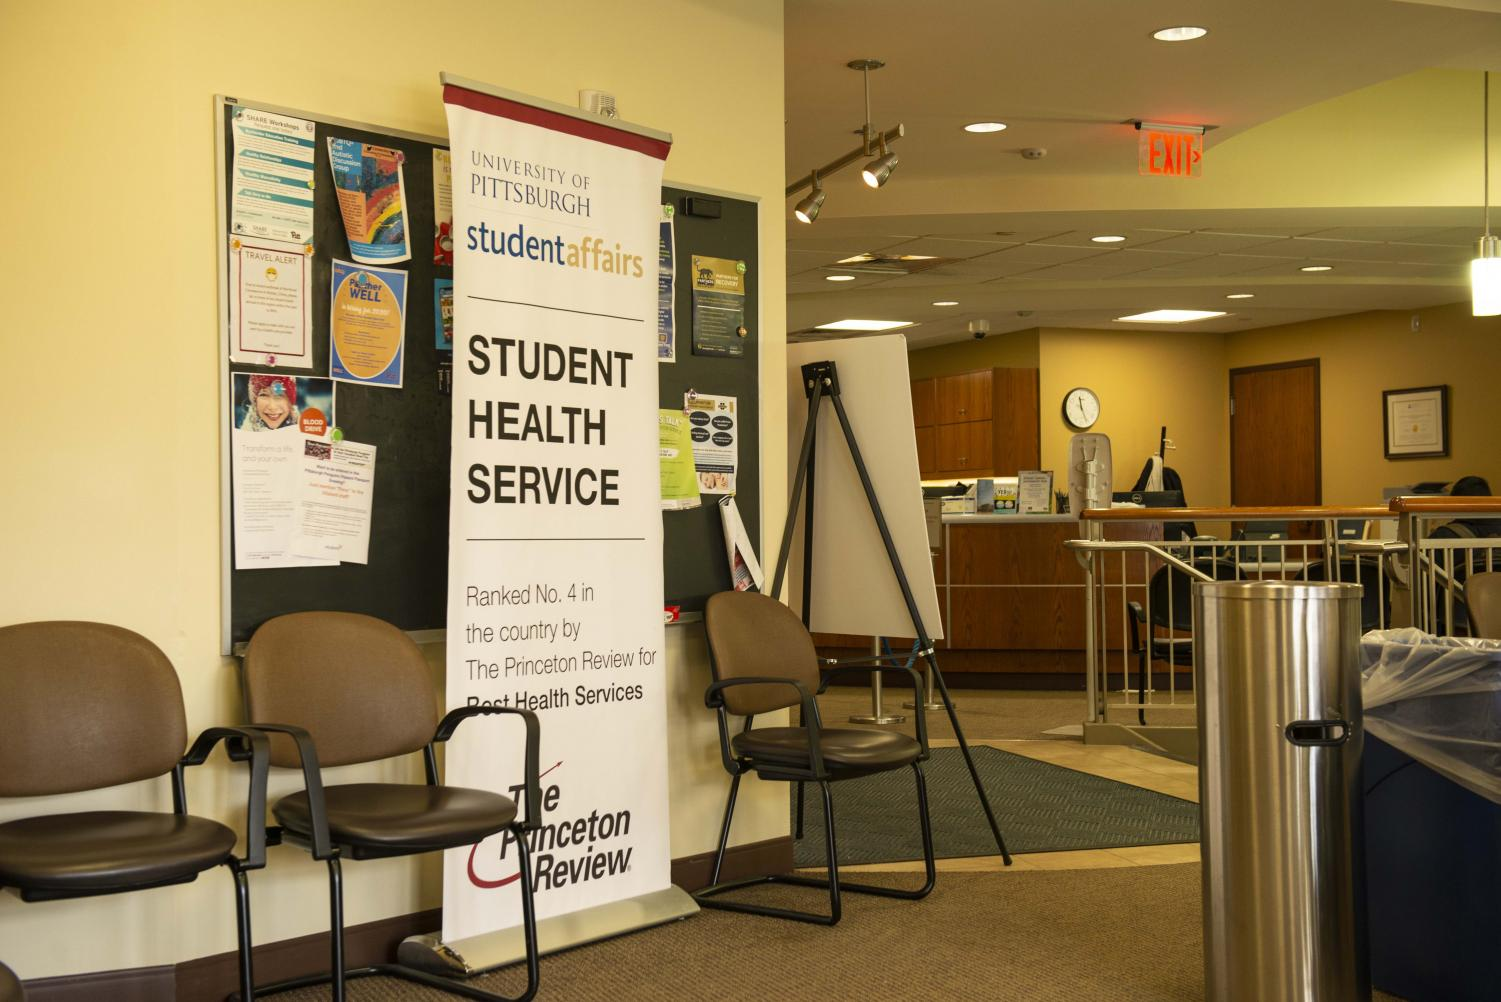 Pitt's Student Health Service, located in Nordenberg Hall, offers a wide variety of sexual health care, including access to contraceptives and comprehensive STD testing, HIV testing and pregnancy testing.